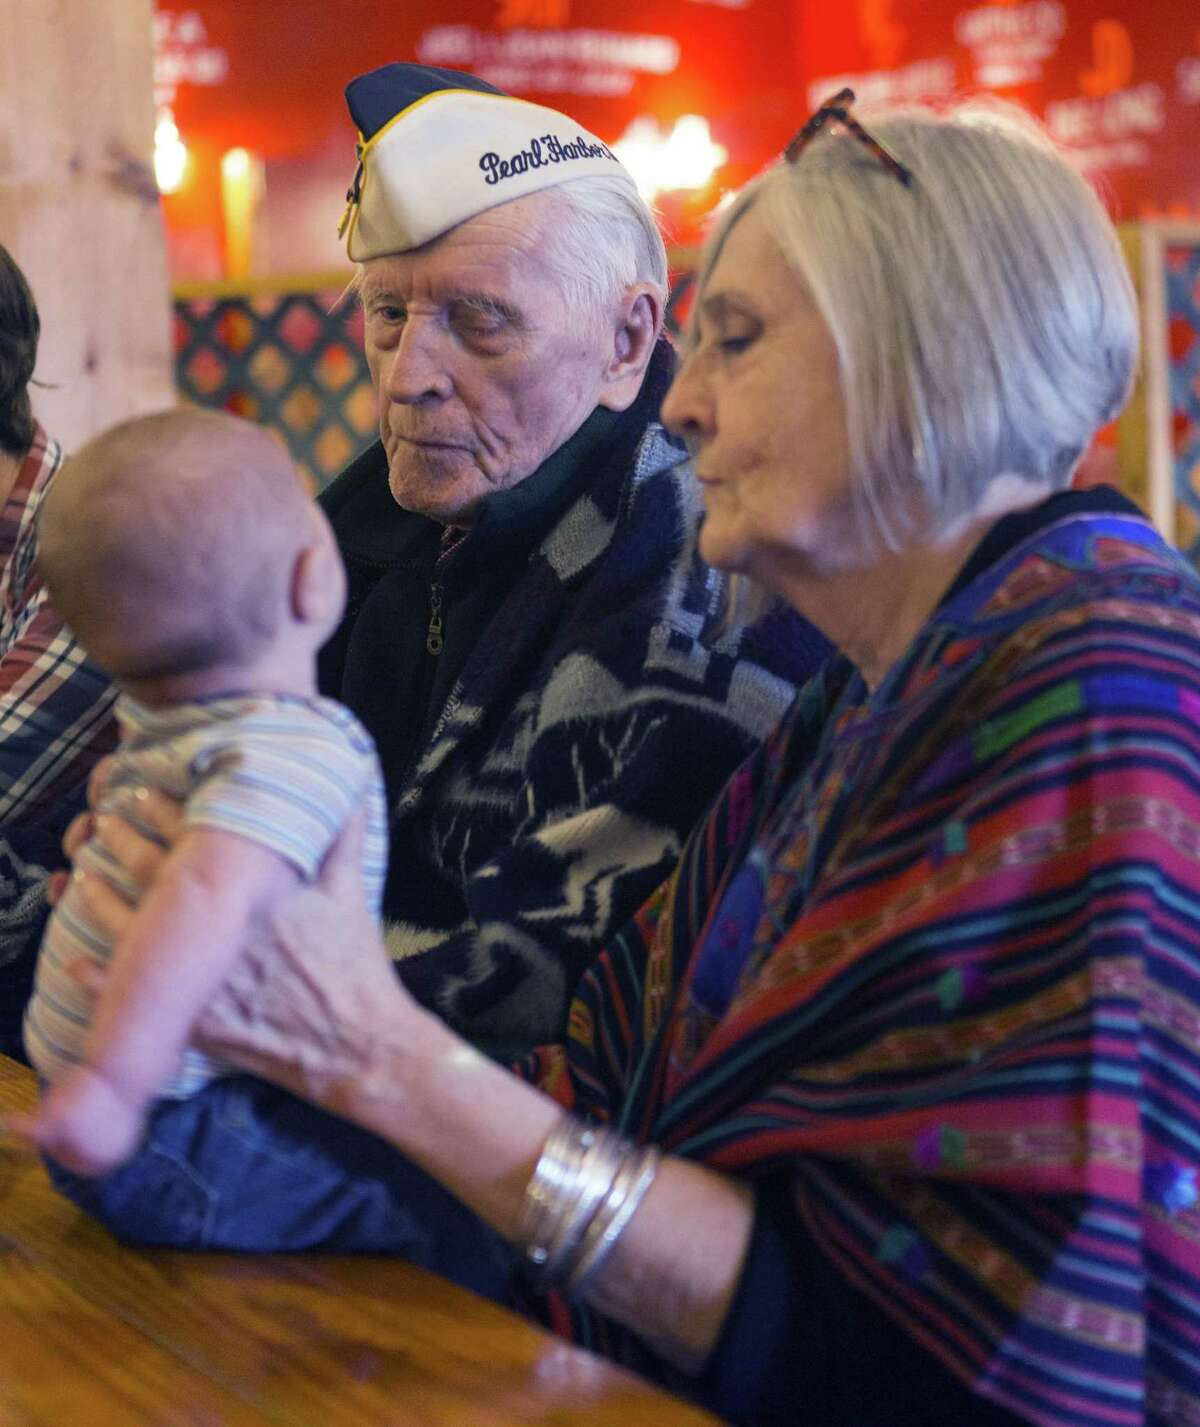 Pearl Harbor Survivor Air Force Maj. Richard Anderson, looks Wednesday, Dec. 7, 2016, toward his great, great grandson Silas Graviss who is being held by Anderson's daughter Sharon Gregory during a luncheon for San Antonio's Pearl Harbor Survivors. Wednesday was the 75th anniversary of the Japanese surprise attack. Fewer than 10 survivors are still alive in San Antonio; four of them made it to the luncheon.